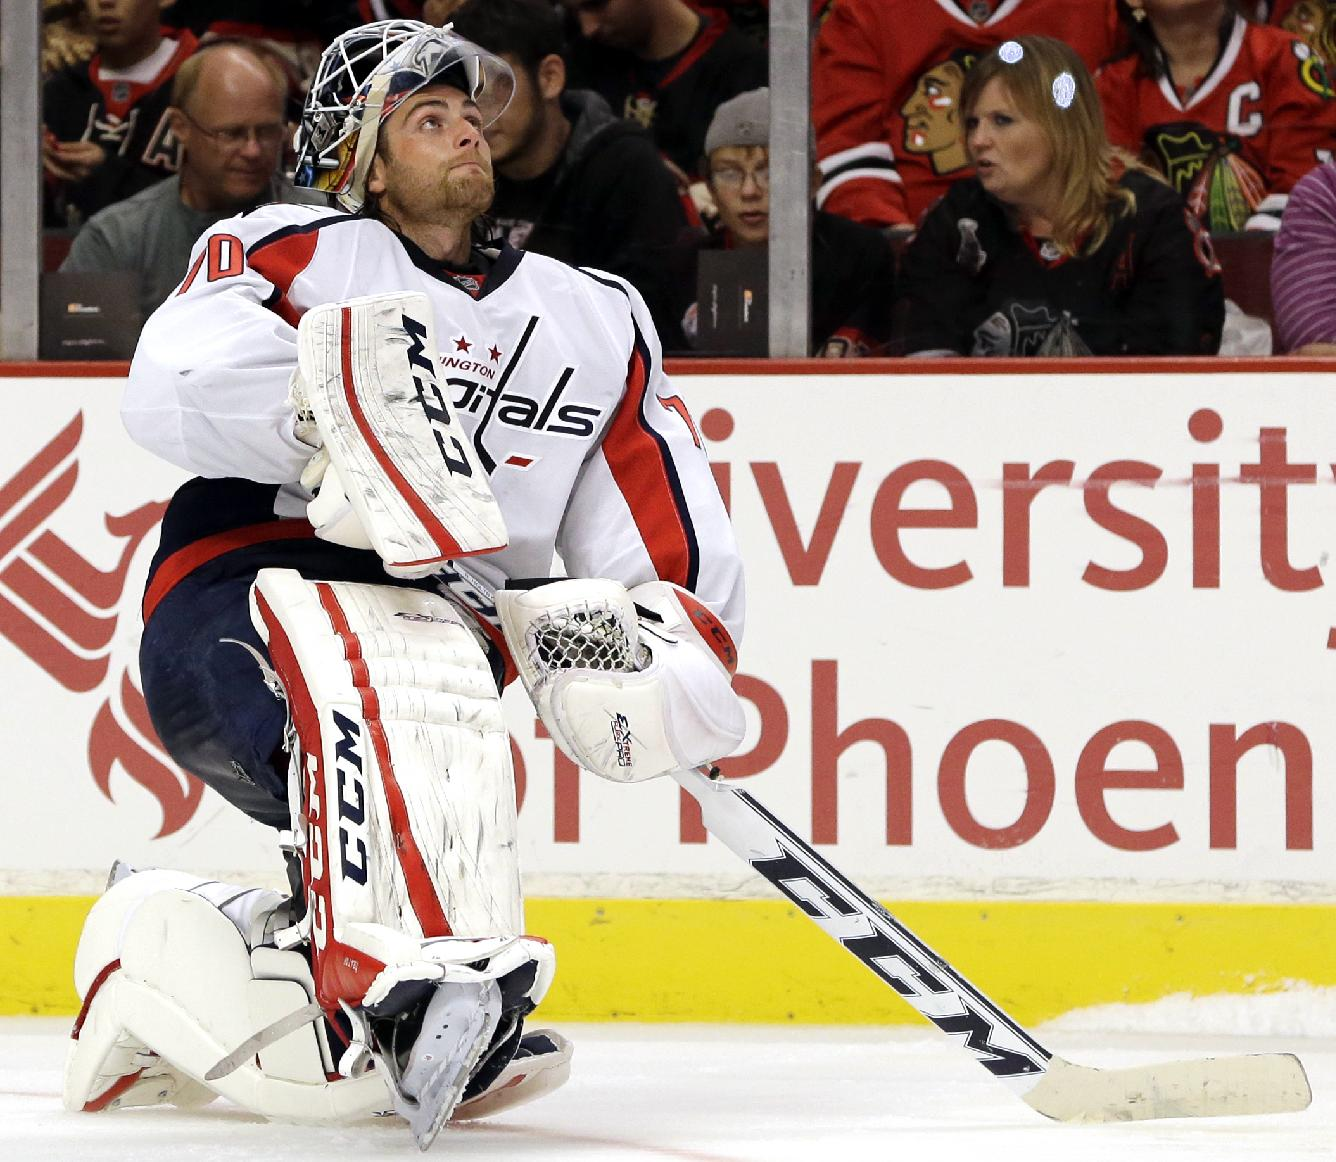 Washington Capitals goalie Braden Holtby stretches as he looks up the score board during the second period of an NHL preseason hockey game against the Chicago Blackhawks  in Chicago, Saturday, Sept. 28, 2013